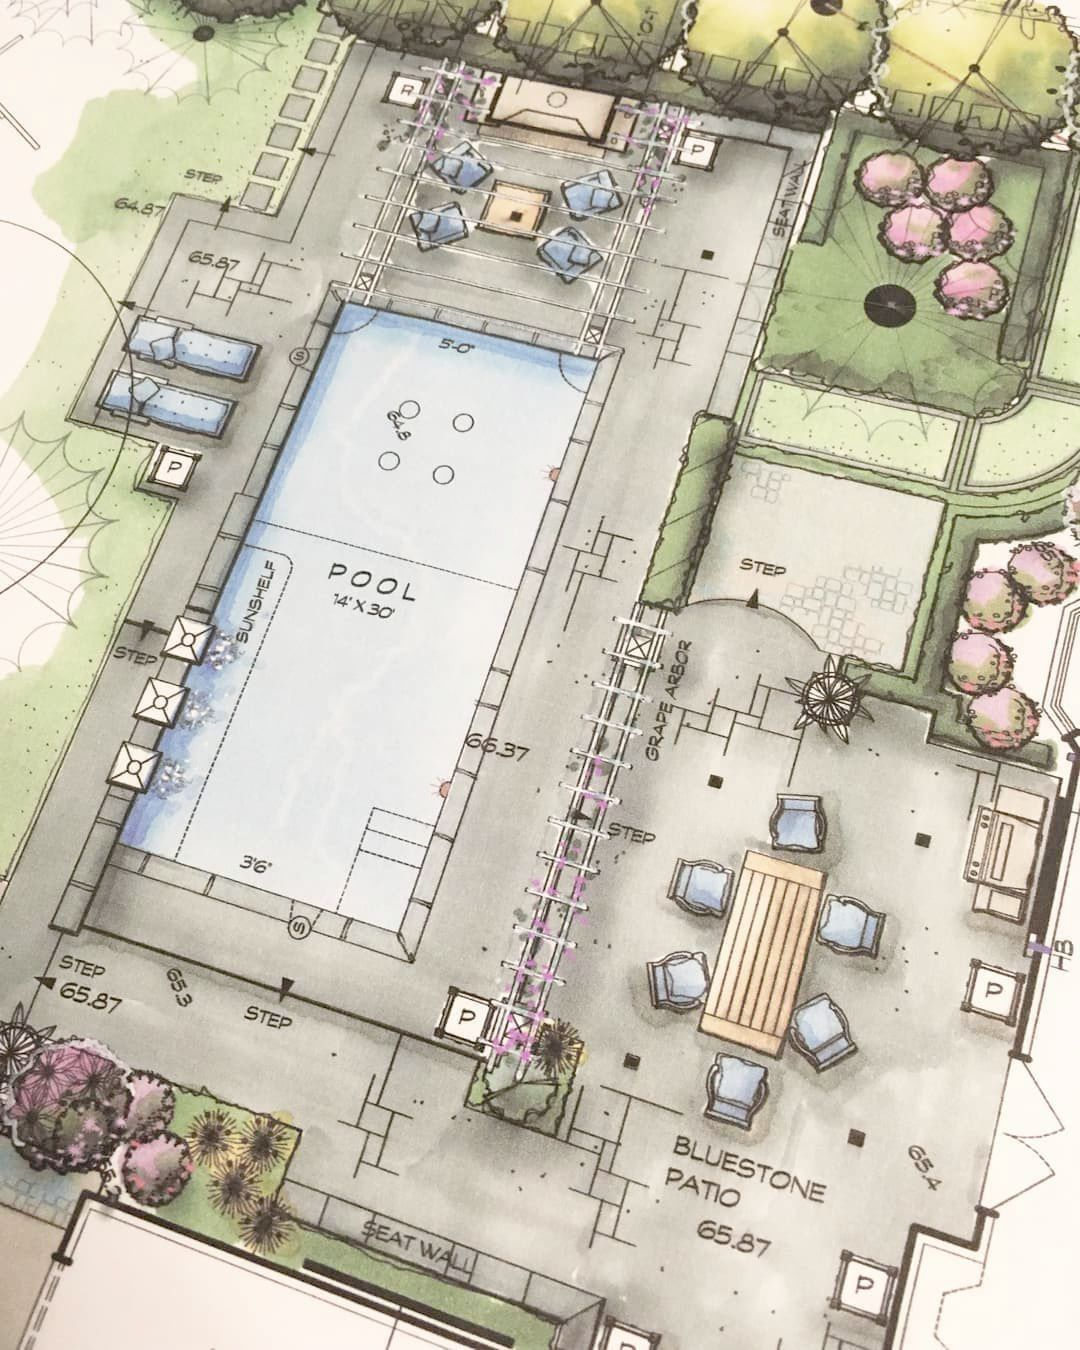 House Plan Software Review 2020 Pool Design Plans Pool House Plans Landscape Design Software